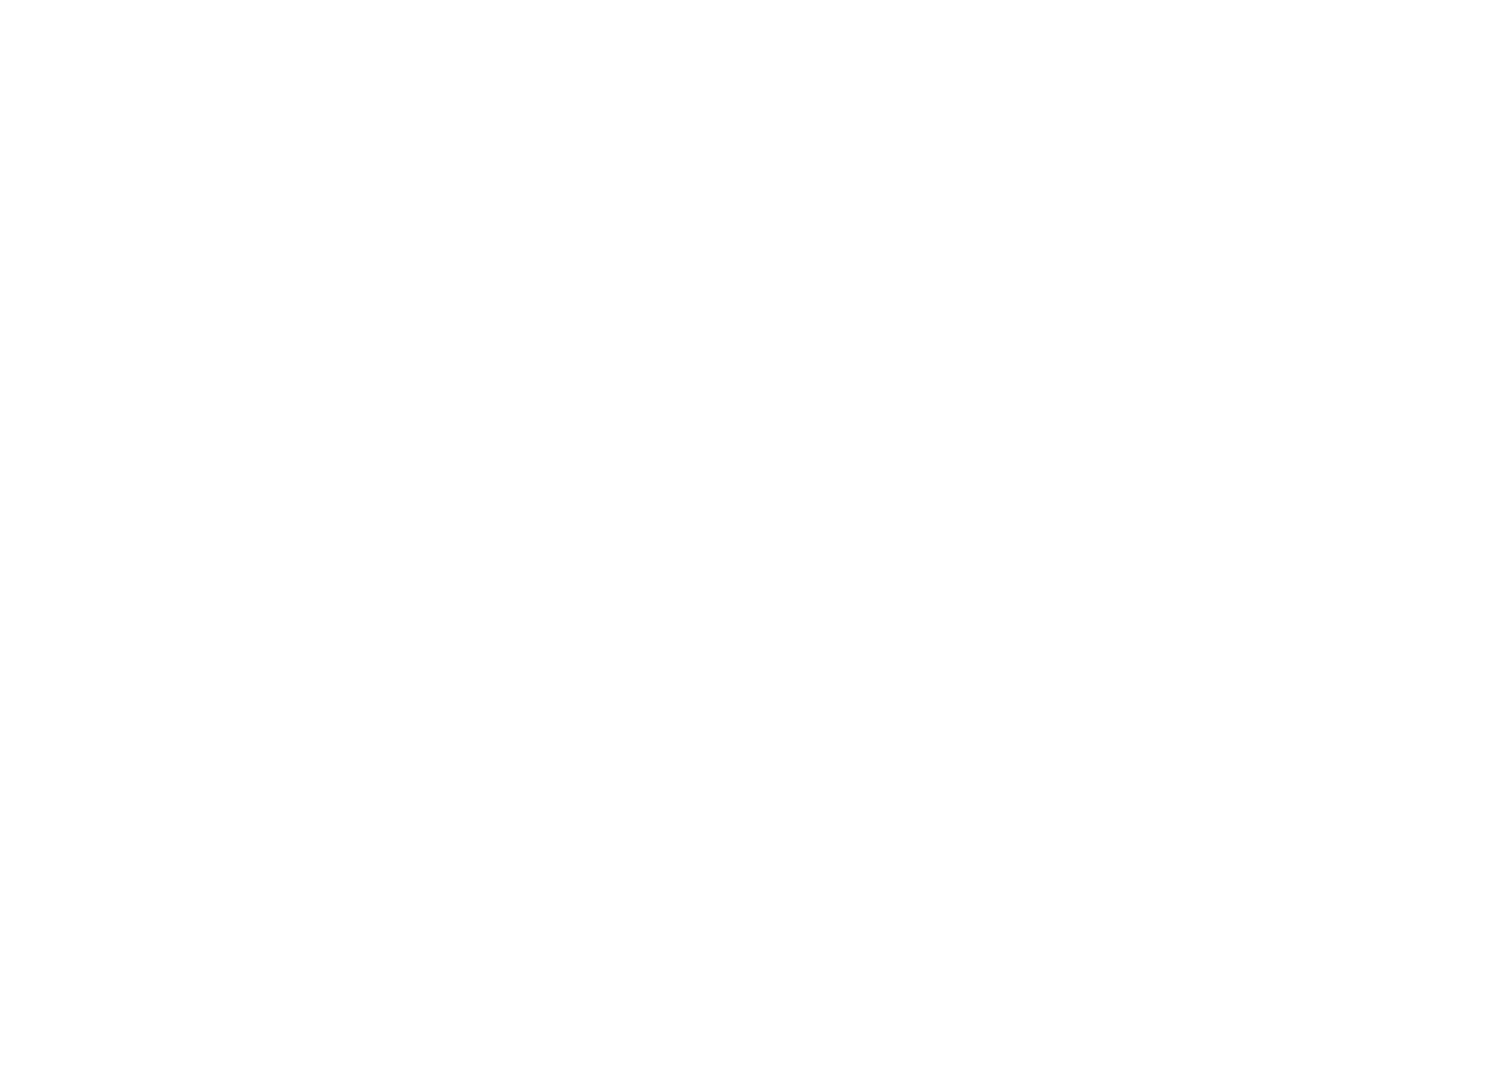 The Collyweston Slater